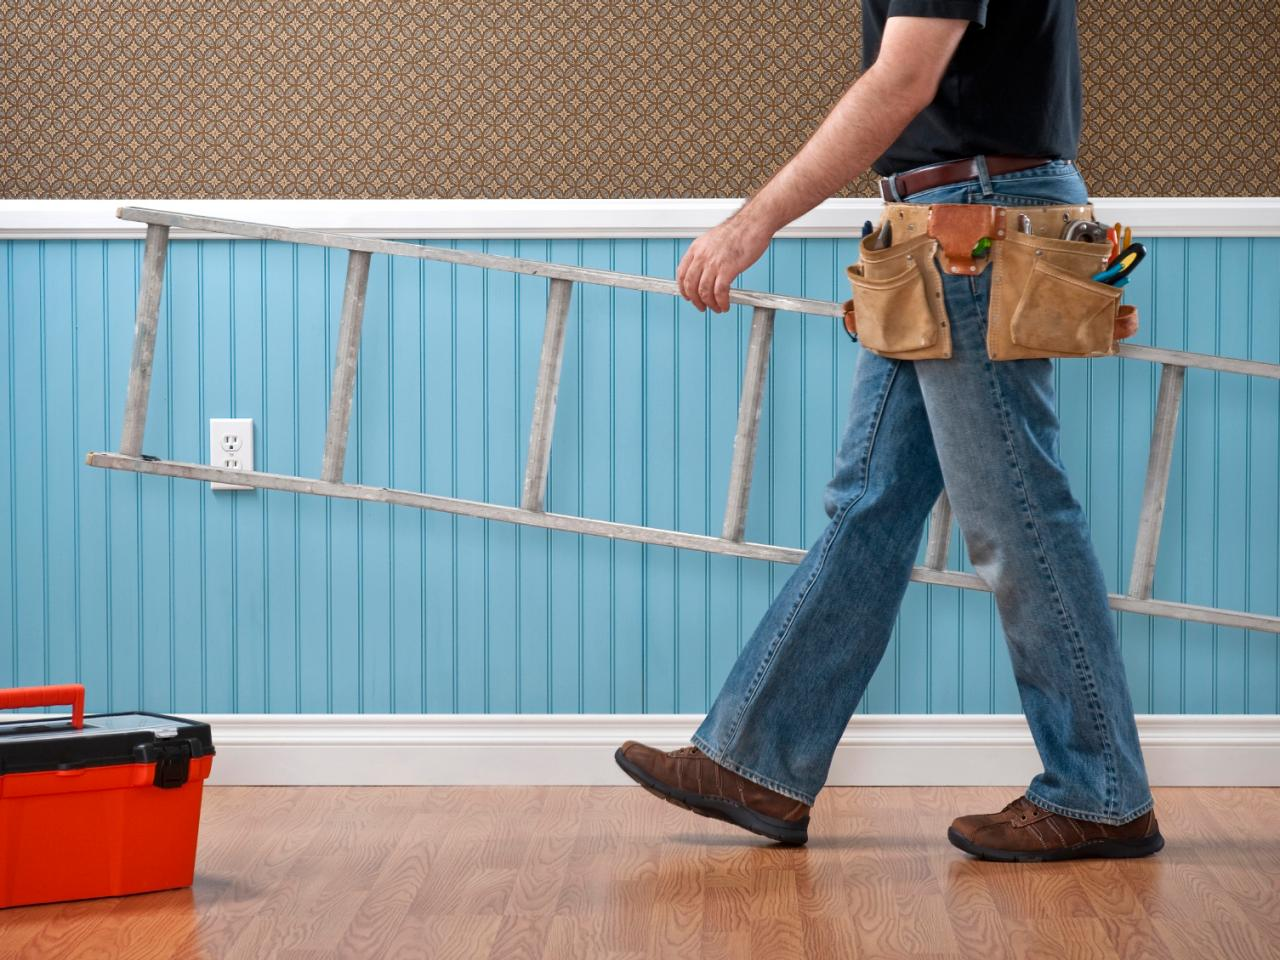 Choosing The Right People to Hire When Going for Remodeling